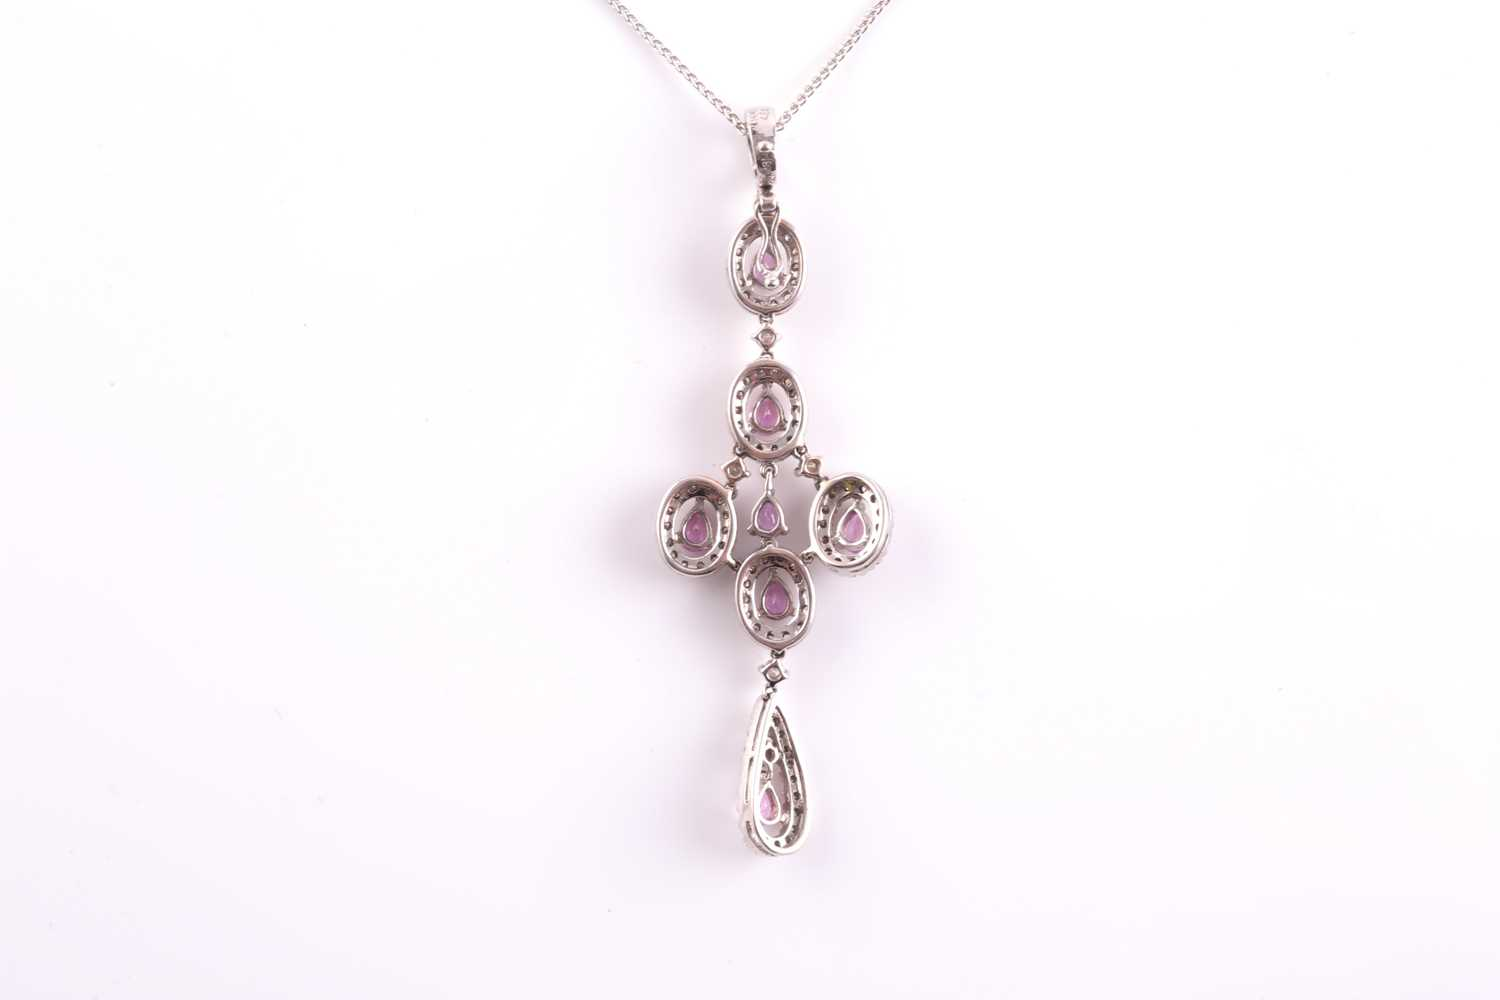 An 18ct white gold, diamond, and pink sapphire quatrefoil drop pendant necklace, the cross design - Image 2 of 4